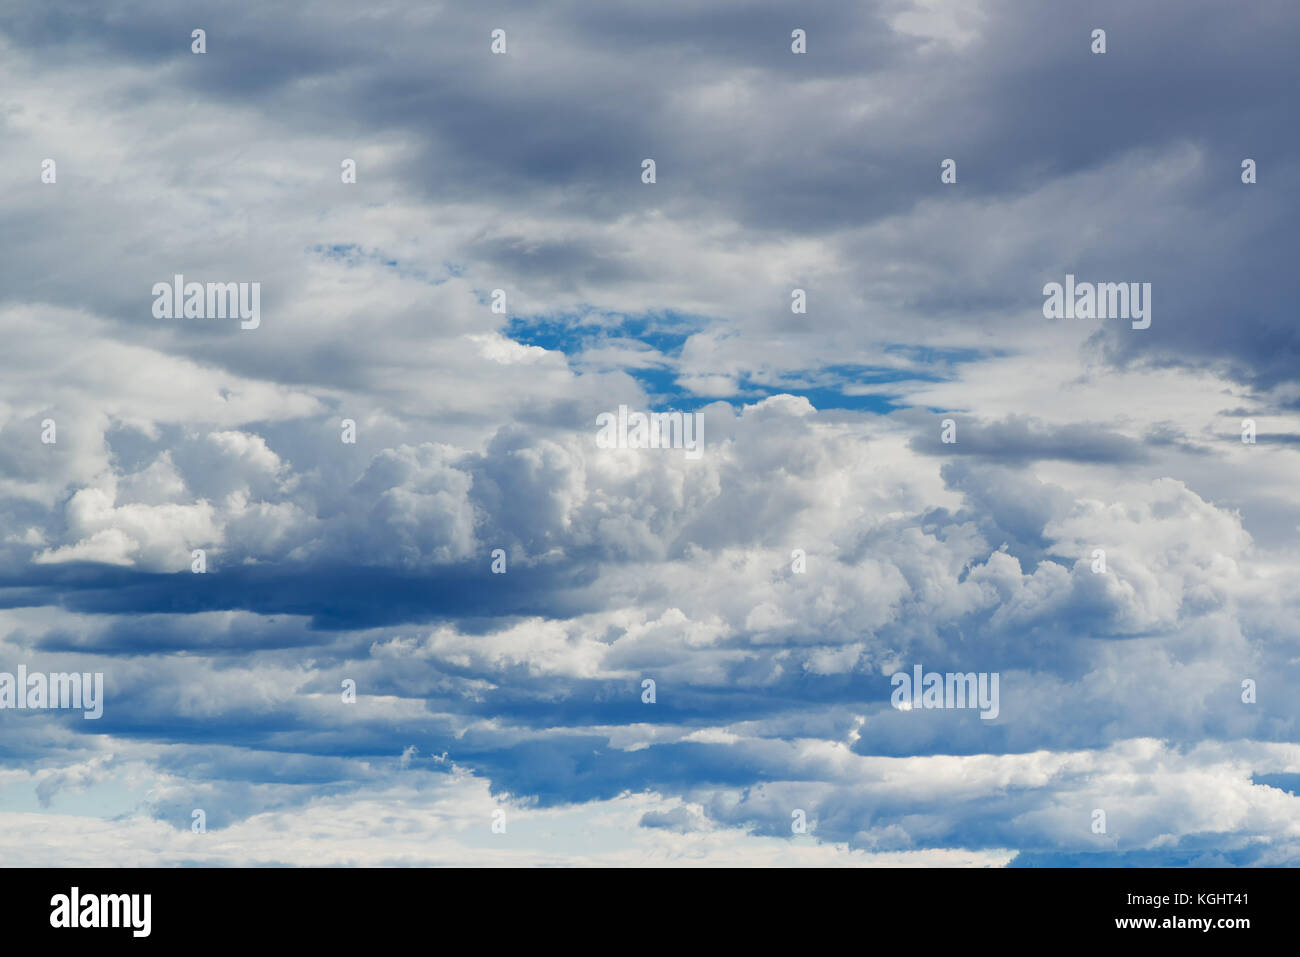 Cloudscape as background, summer sky with white fluffy clouds - Stock Image